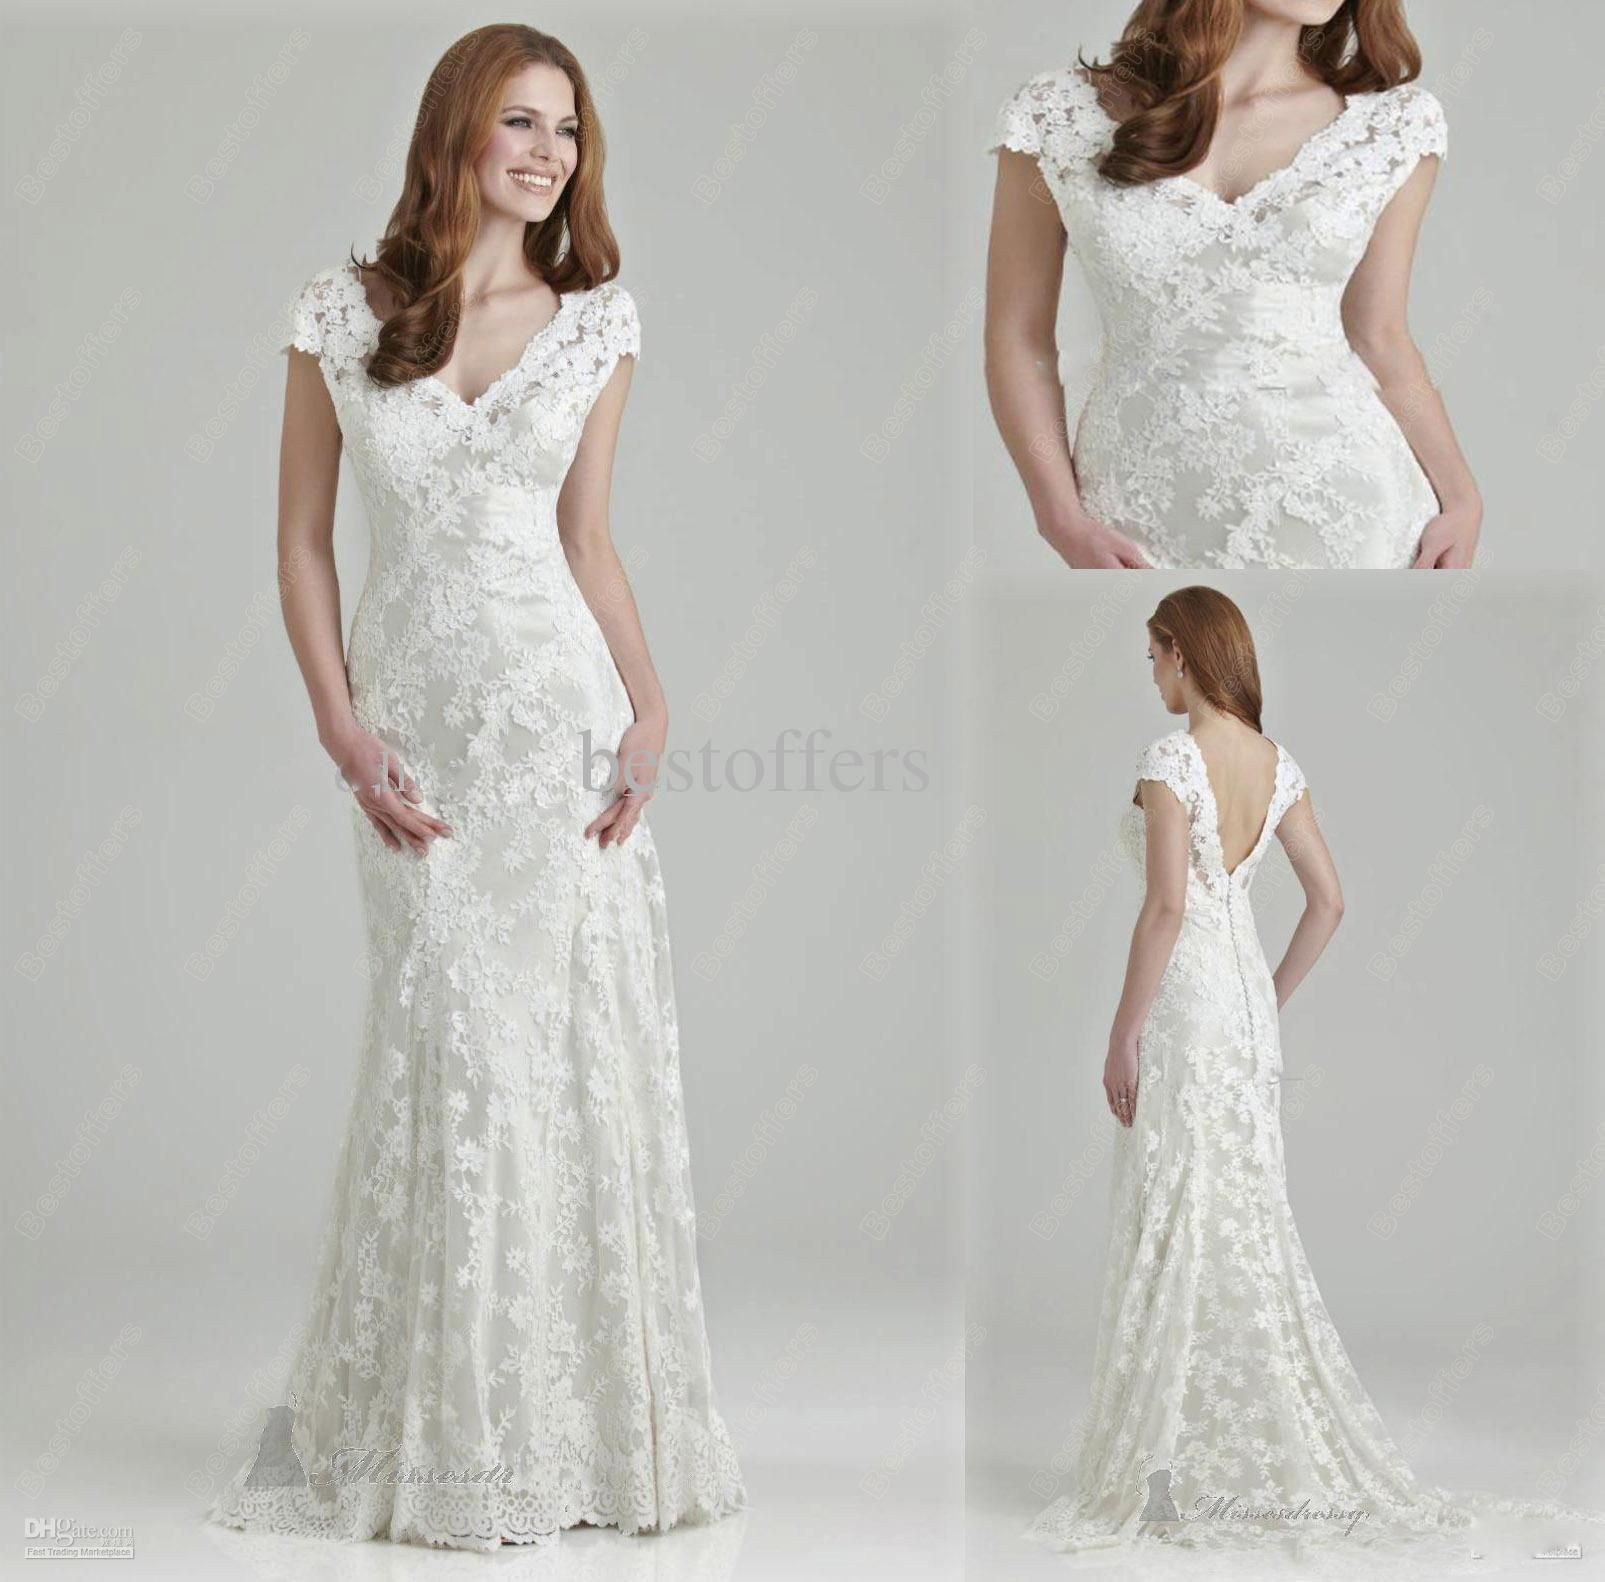 Wholesale Wedding Dress - Buy Affordable Lace Wedding Gown V-Neck A ...